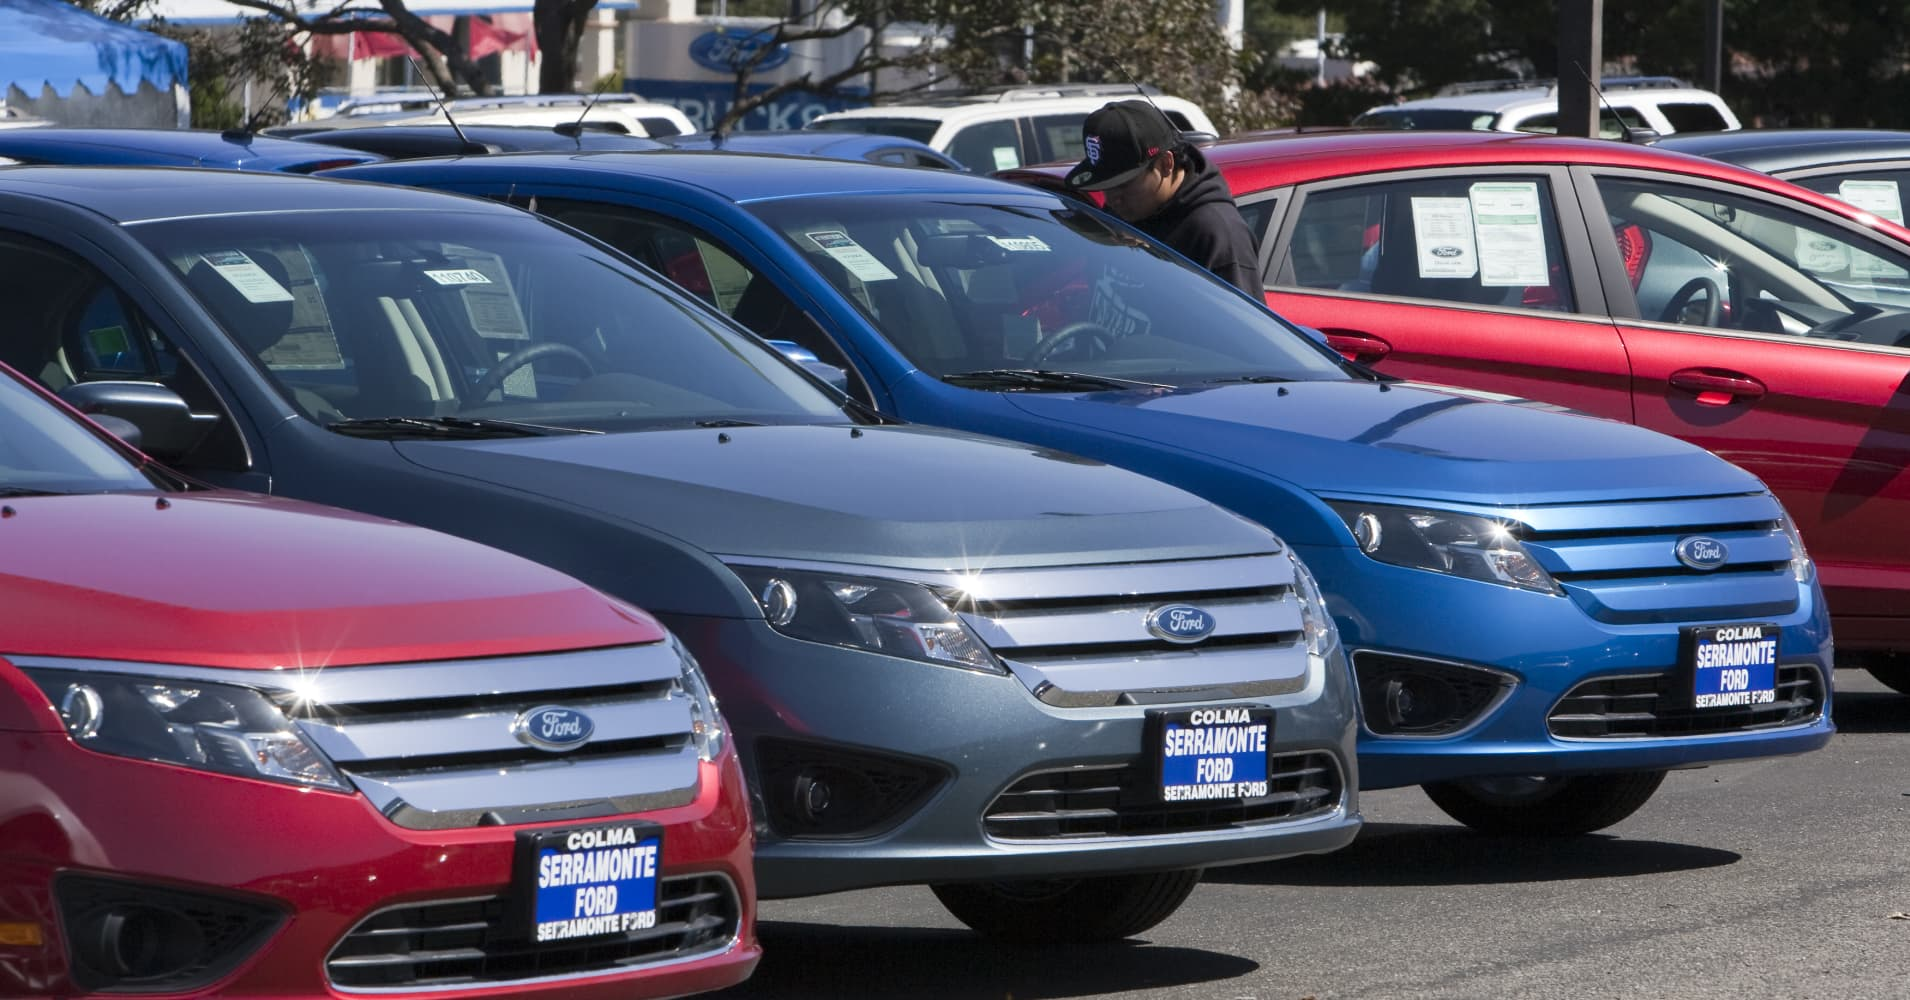 US regulators open investigation on 2009-2011 Ford Fusion